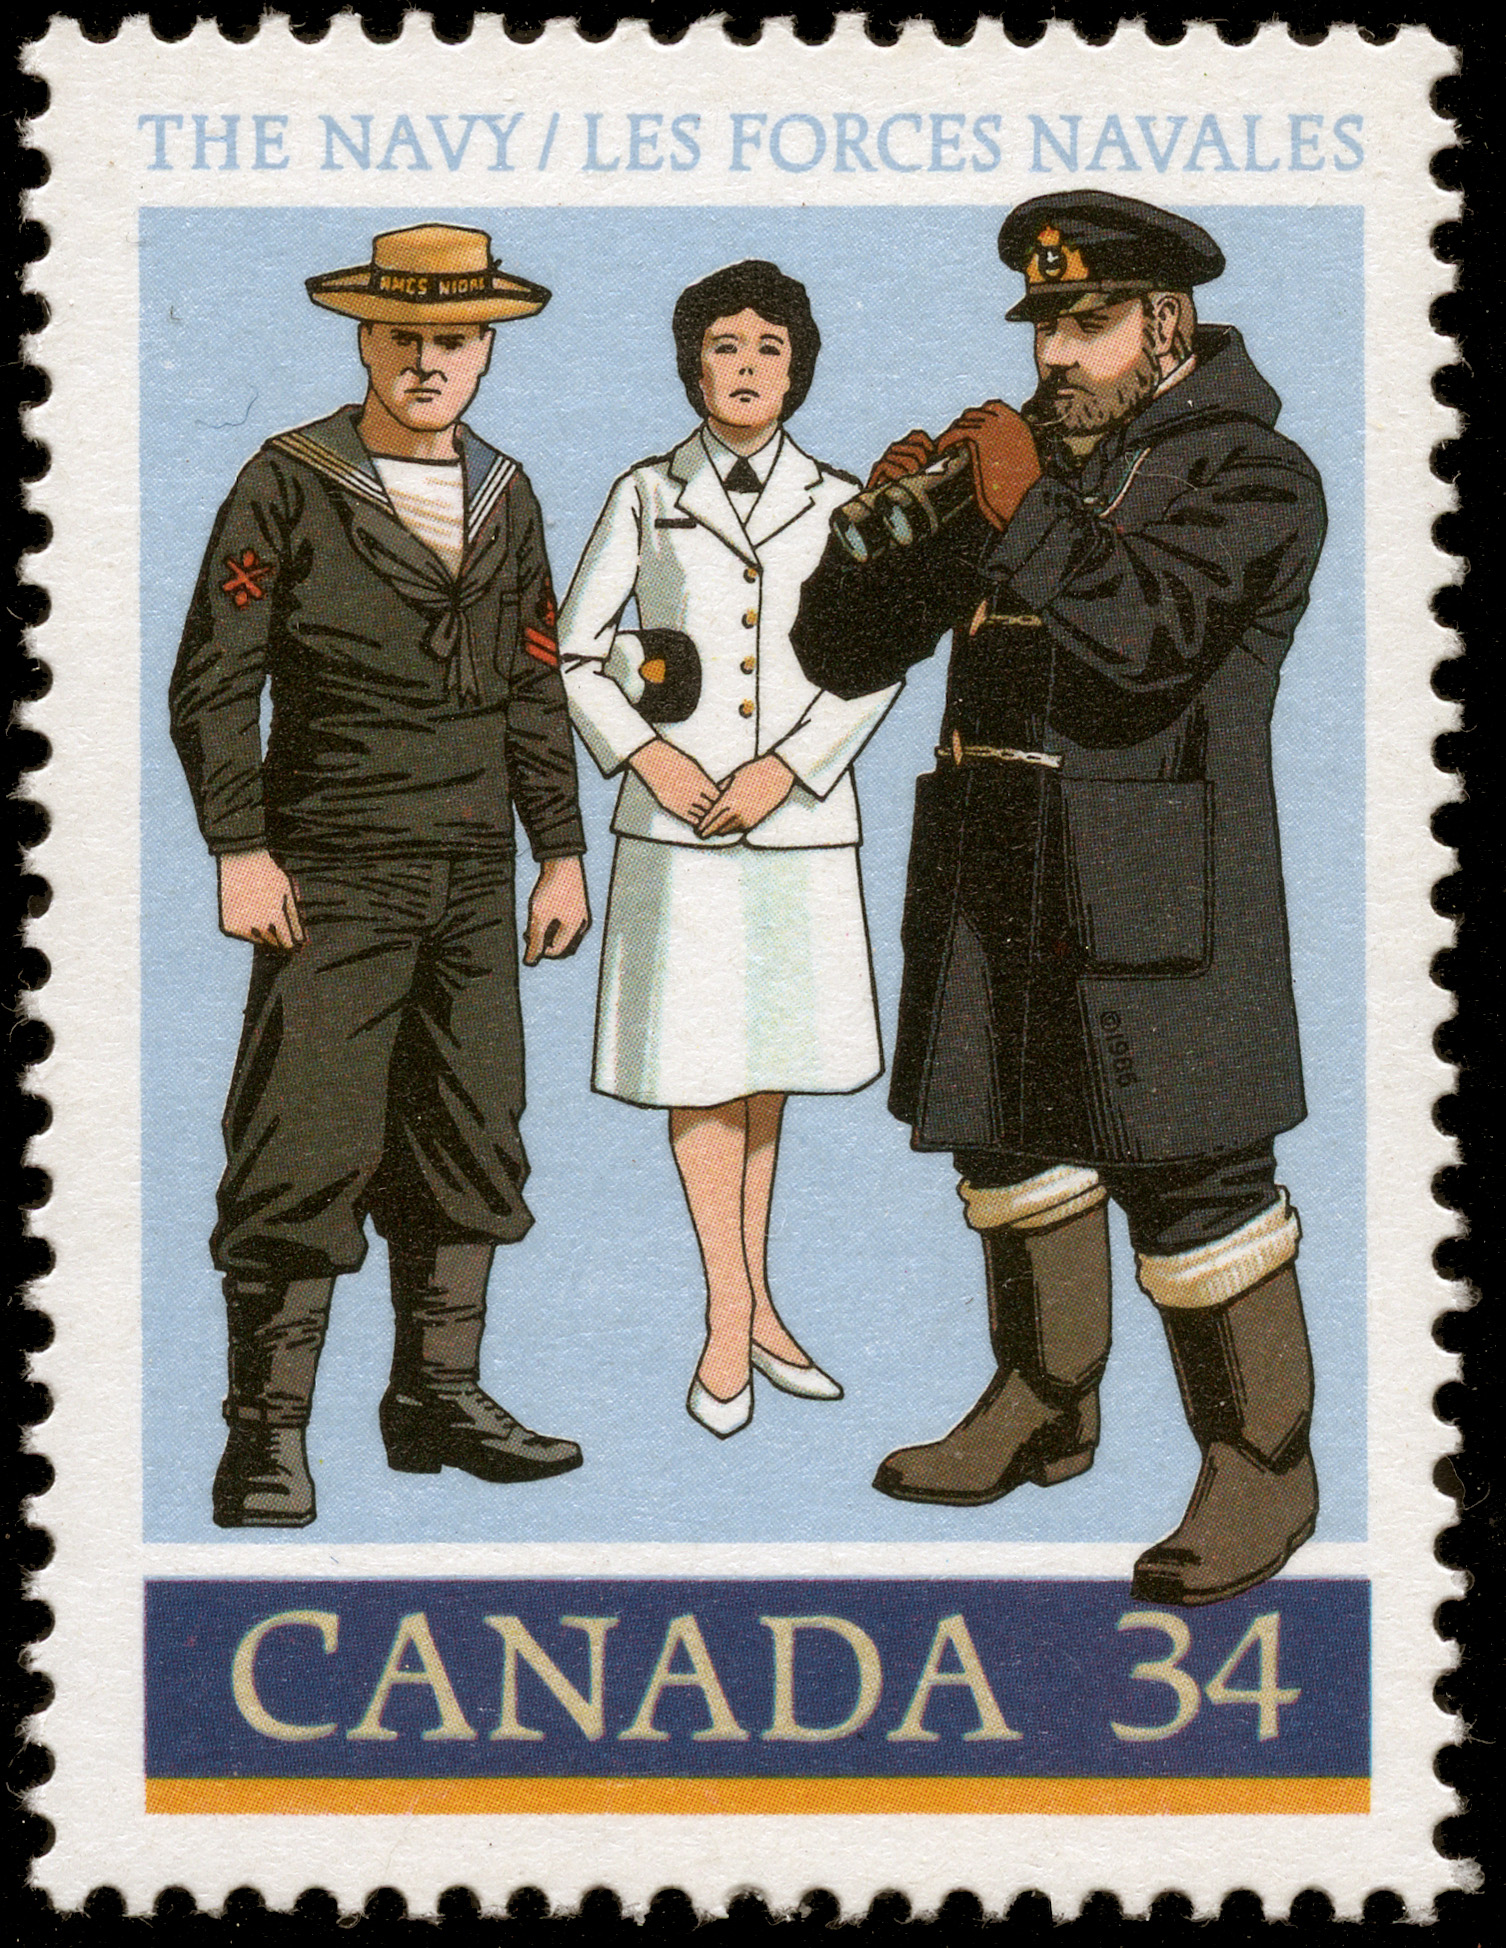 The Navy Canada Postage Stamp